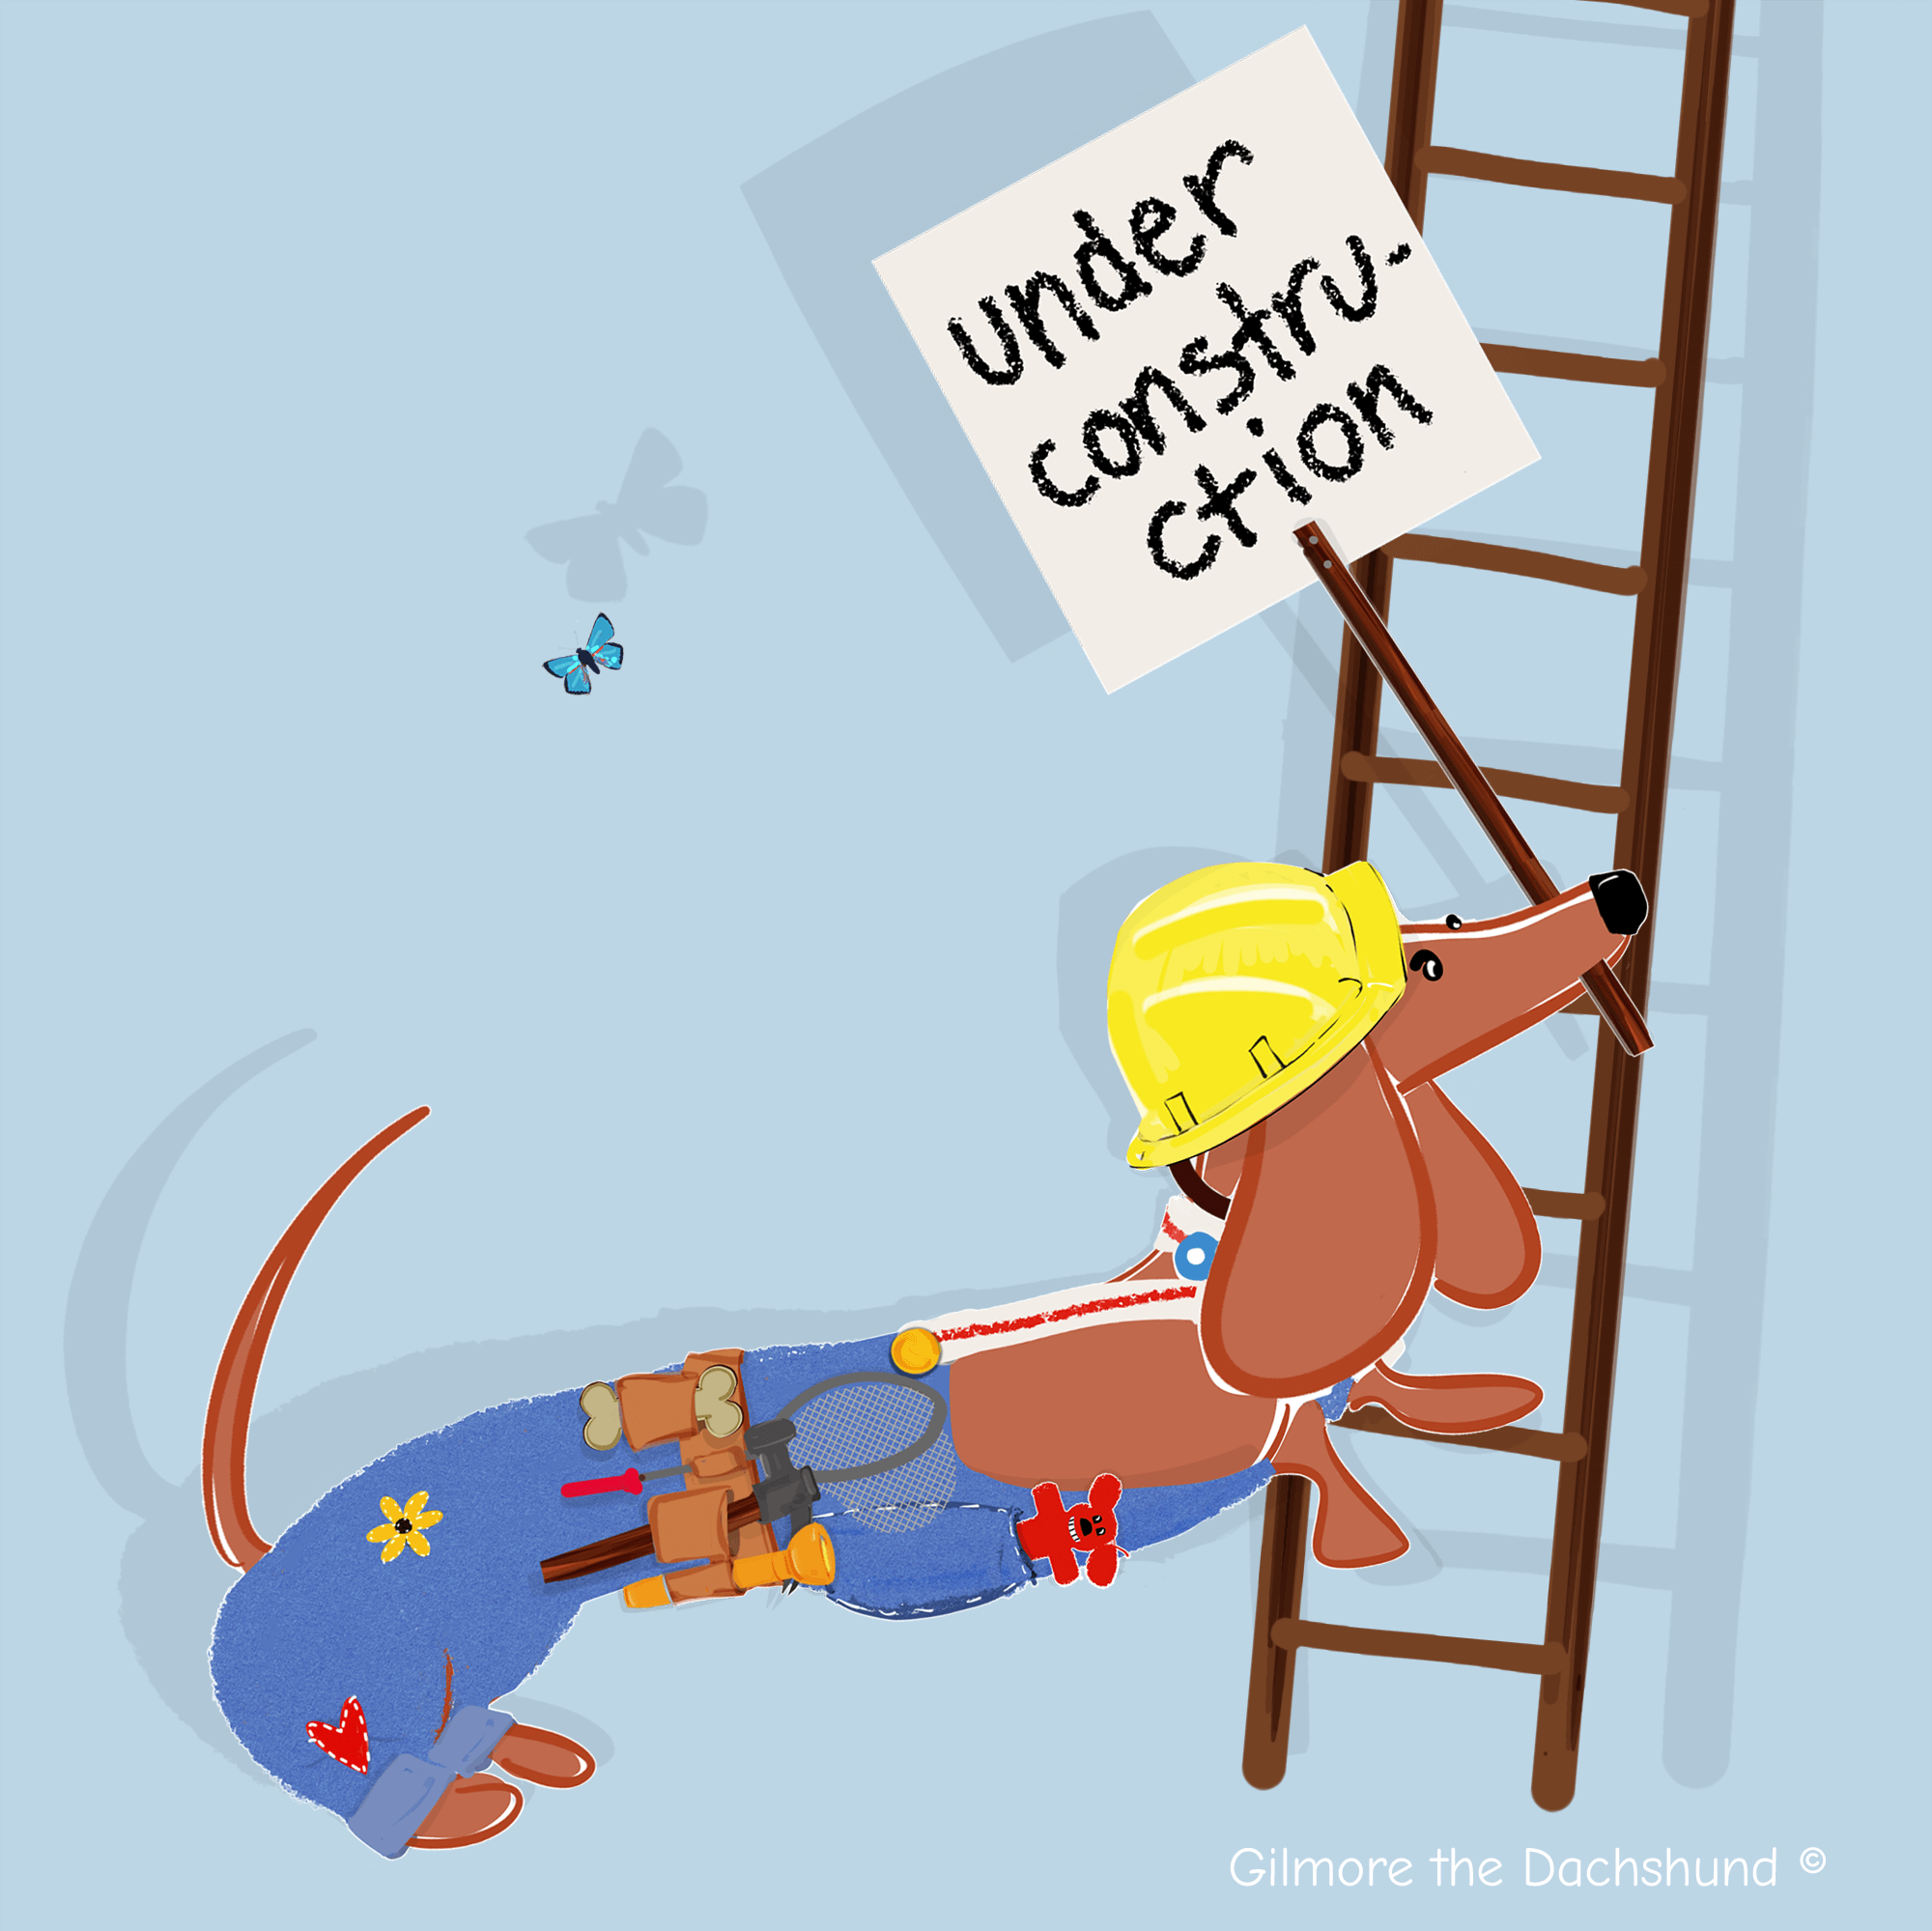 Gilmore the Dachshund © we are under construction